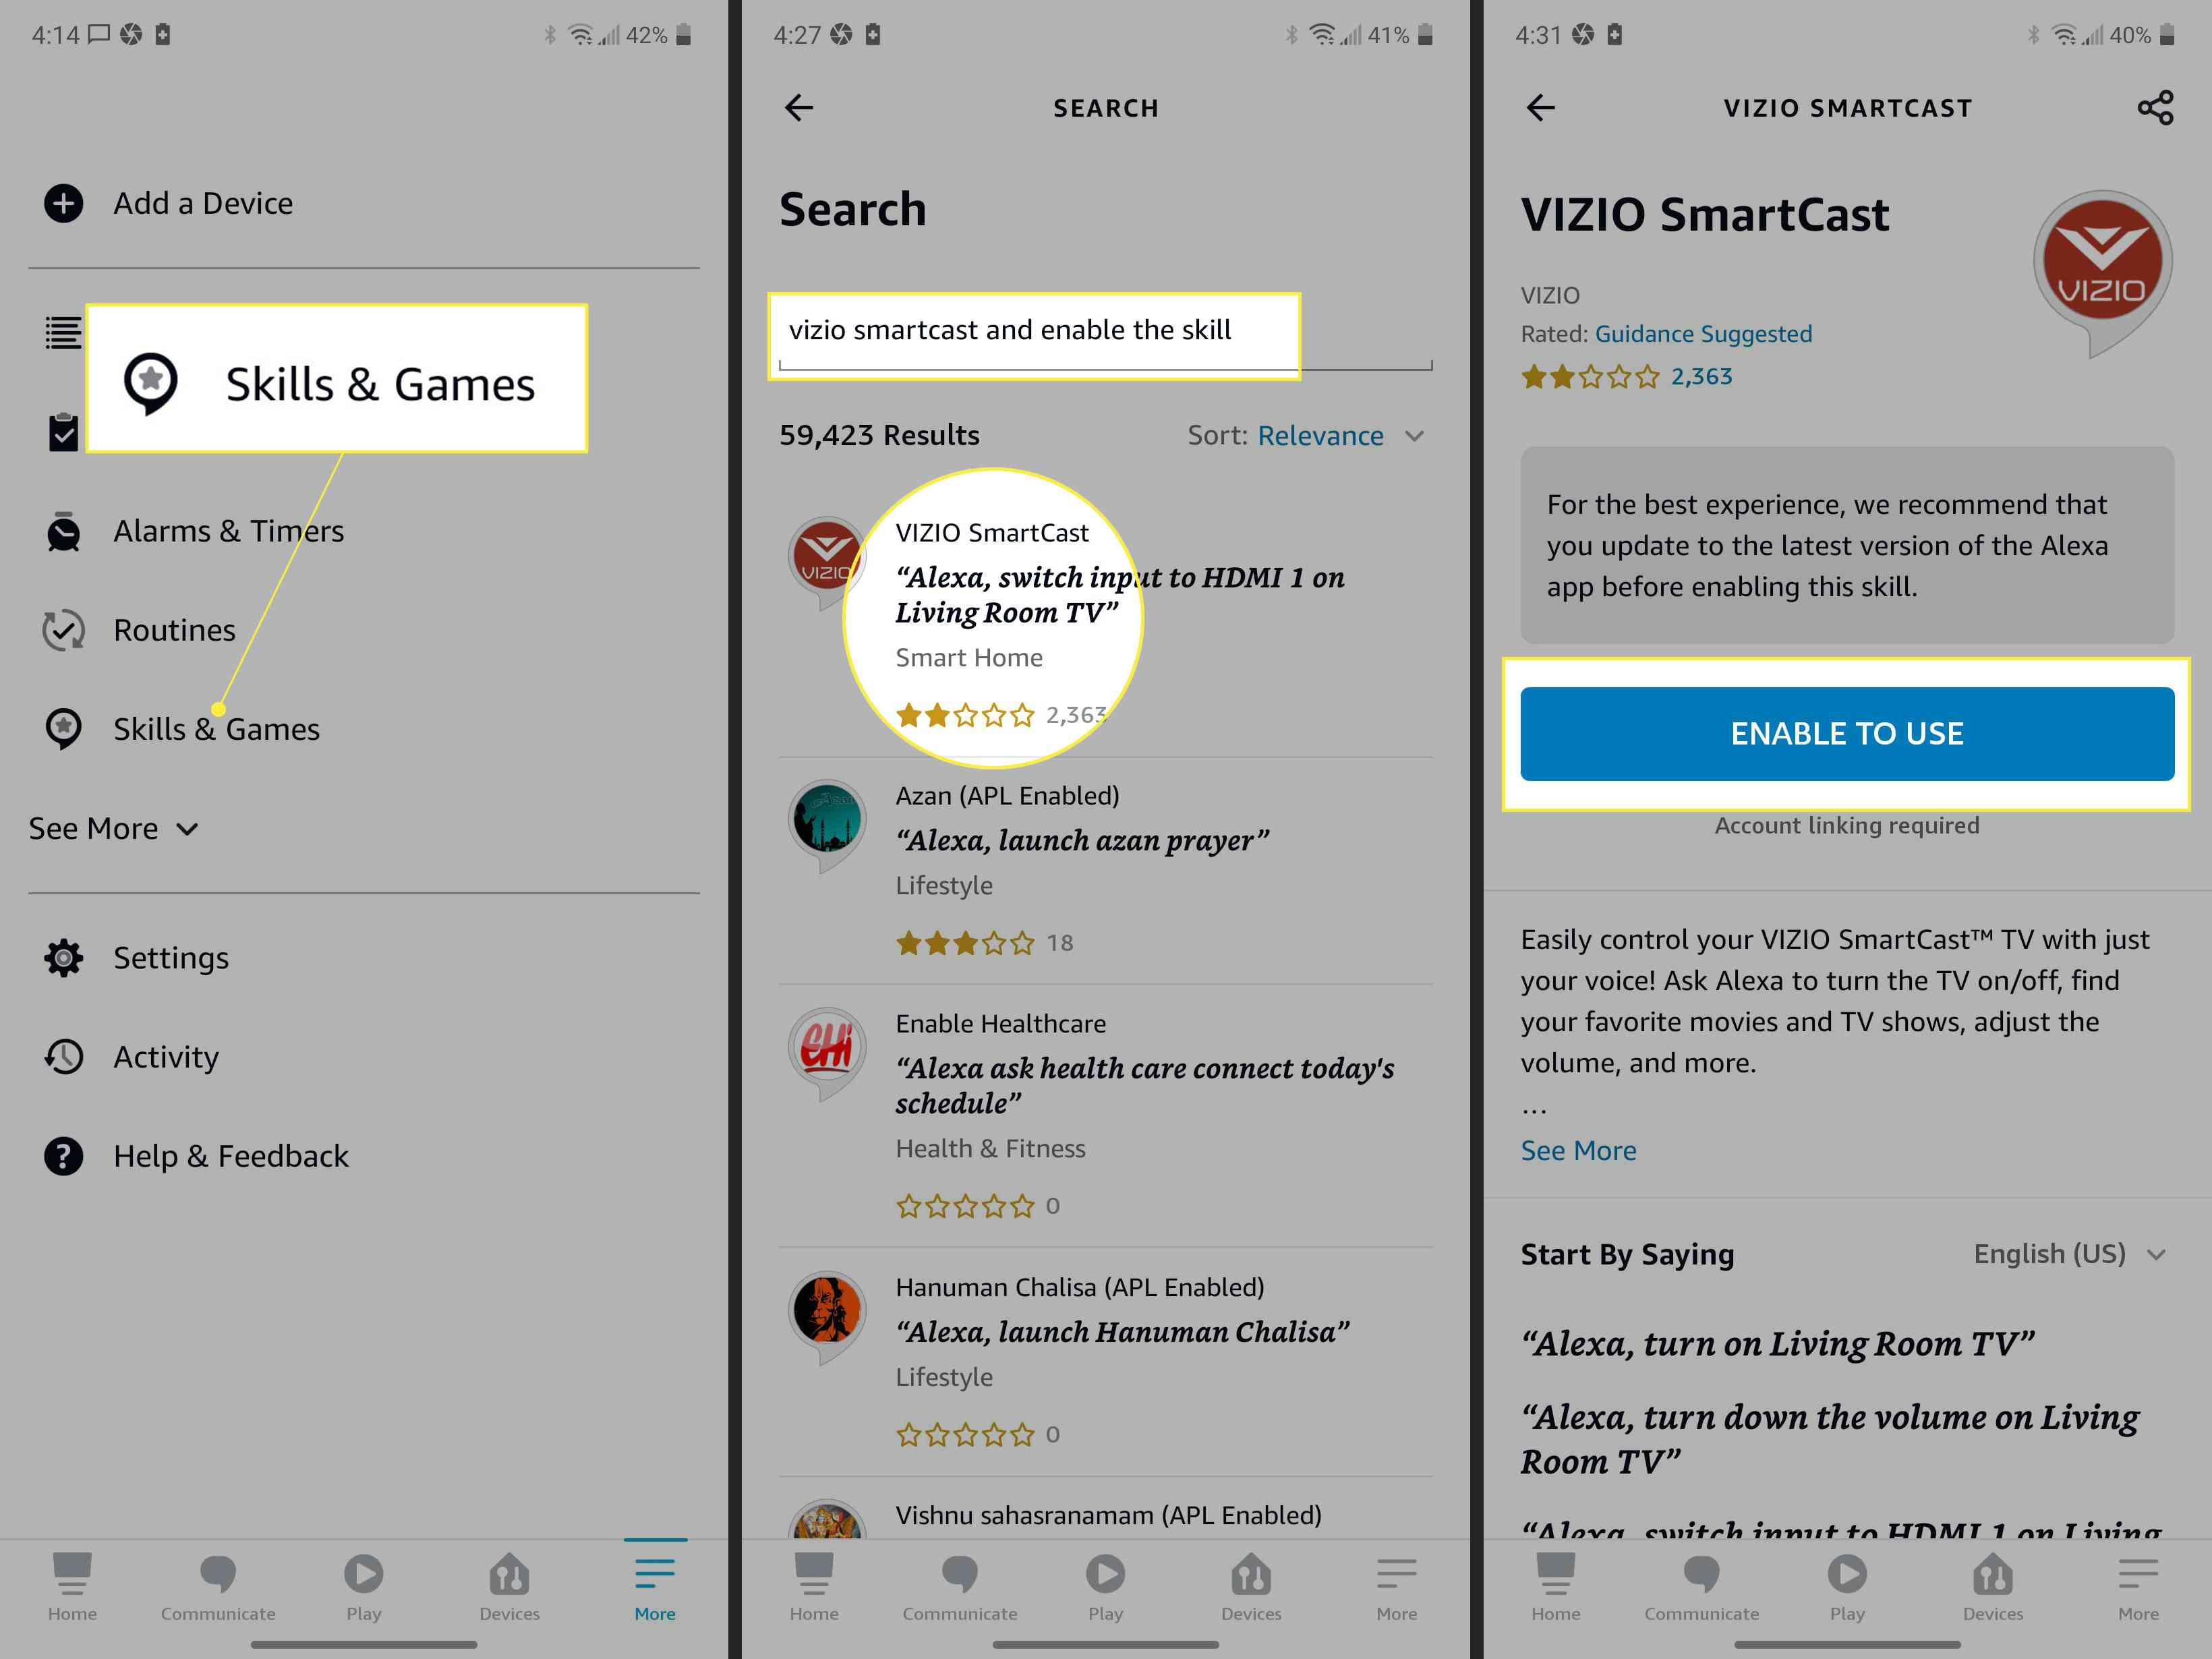 Alexa app with Skills & Games, search field, the Vizio SmartCast skill, and Enable to Use highlighted